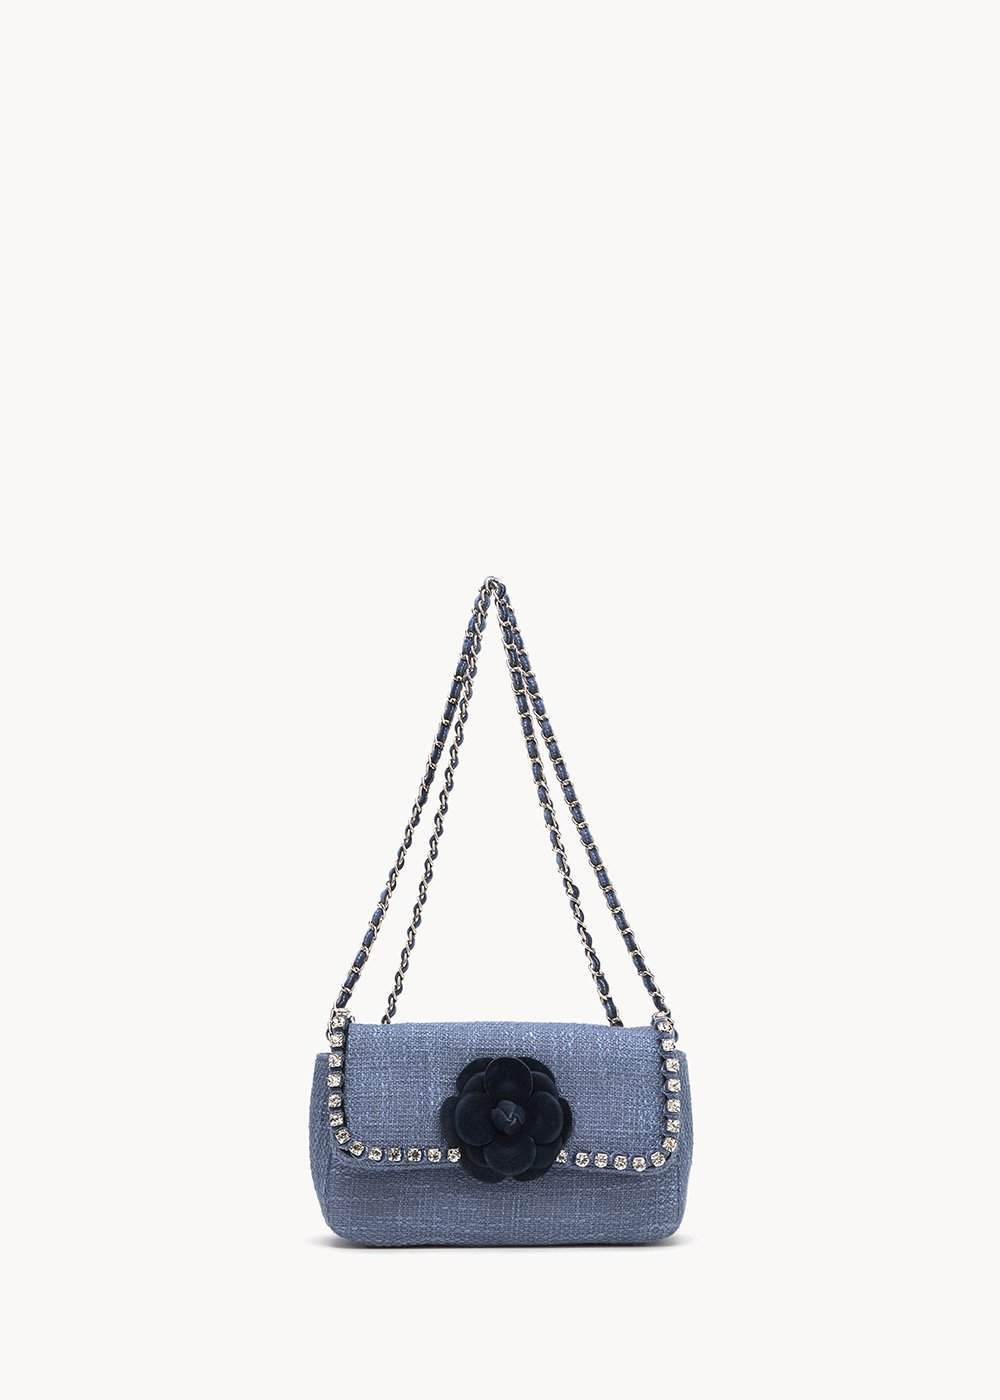 Bally clutch bag with rhinestones and shoulder strap - Fog / Dark Blue	 - Woman